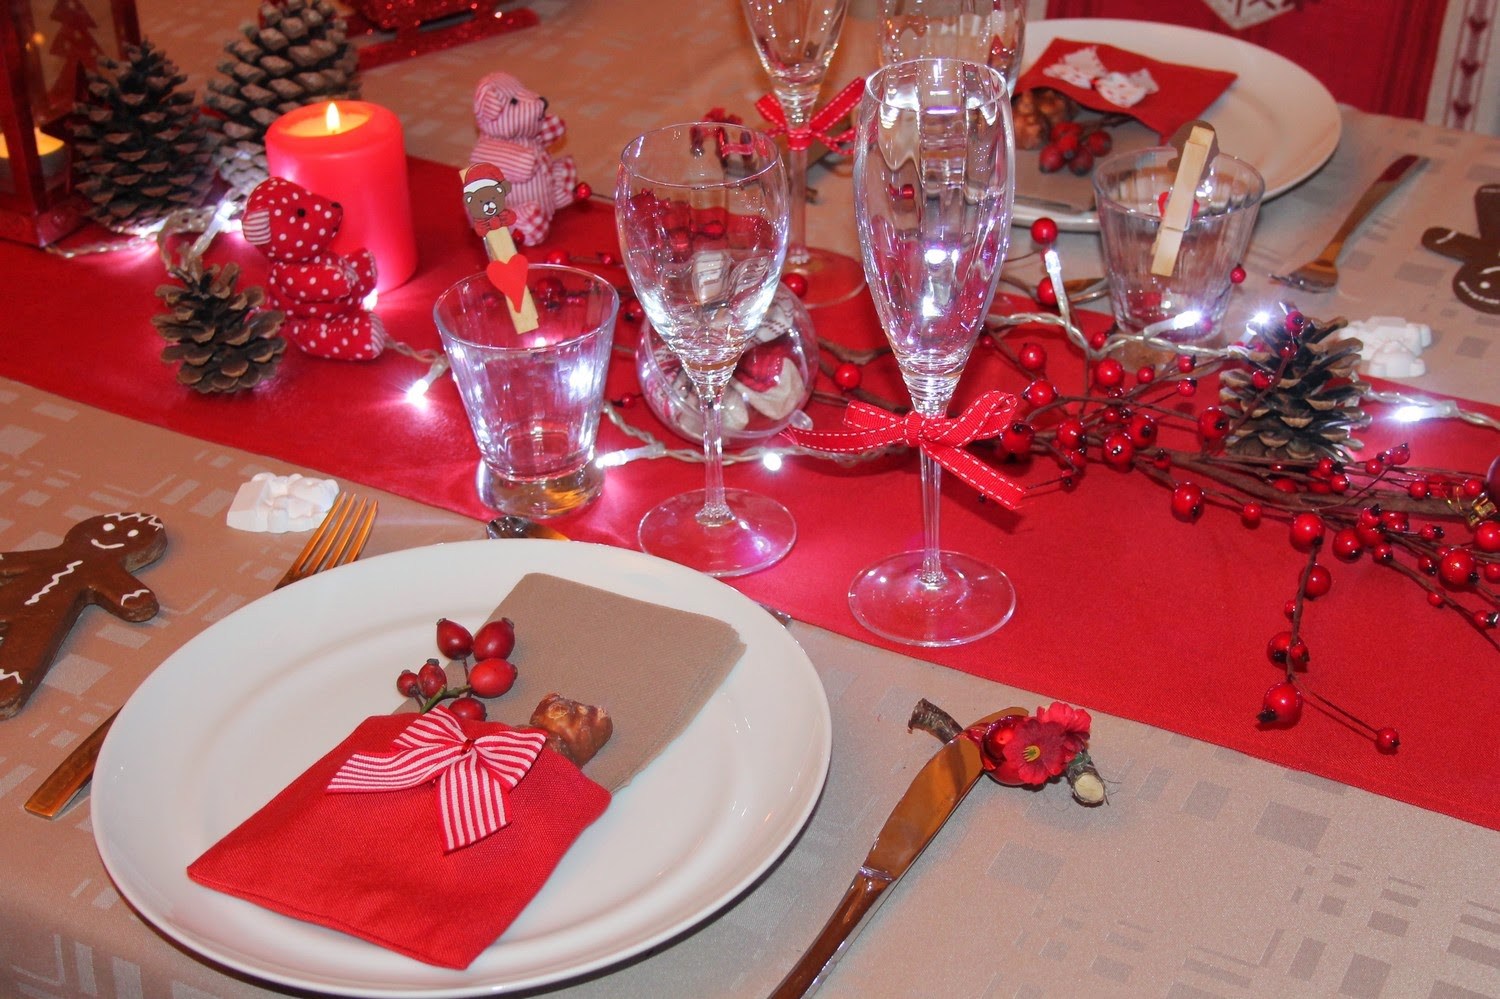 Mes motsdoubs des id es pour vos d cos de table pour no l for Decoration pour table de noel